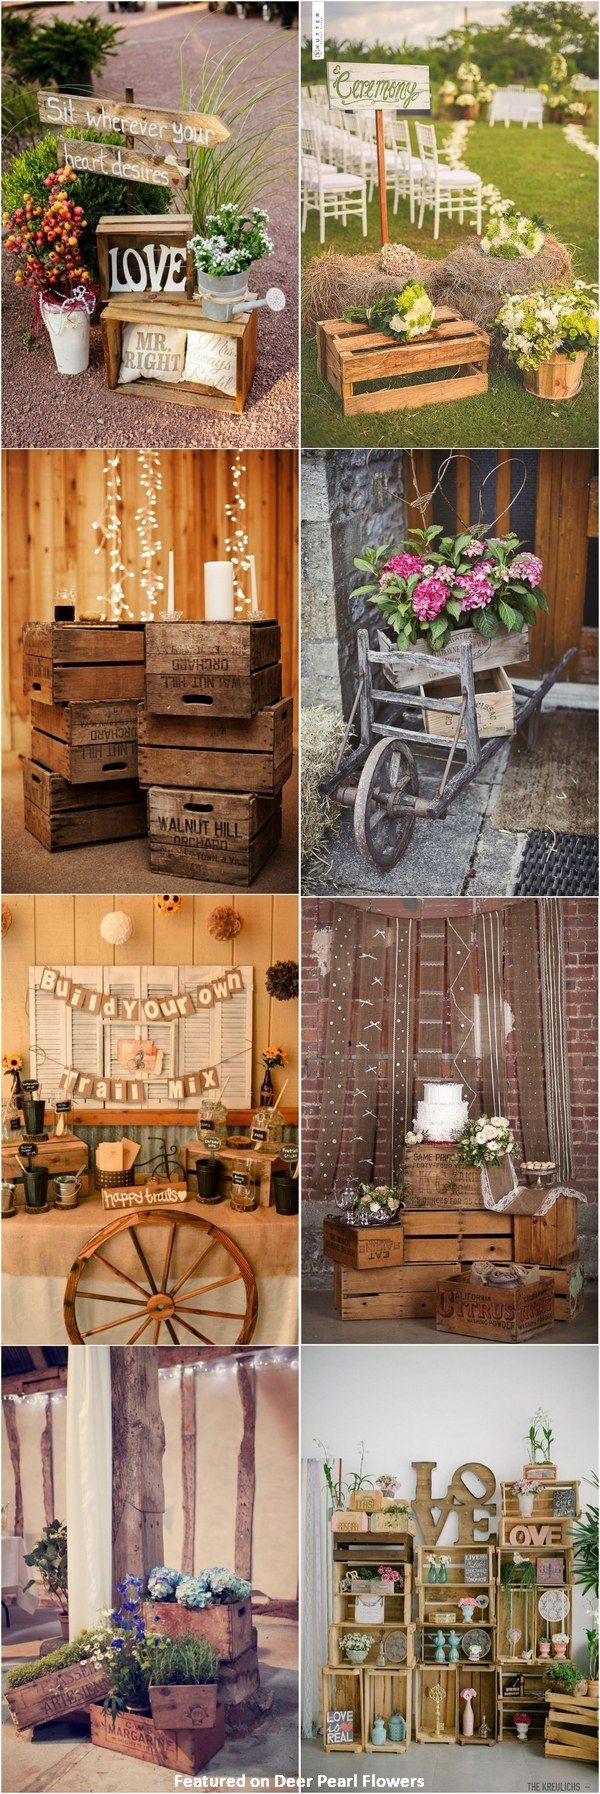 Diy rustic wedding decor ideas   Rustic Country Wooden Crates Wedding Ideas  Pinterest  Wooden